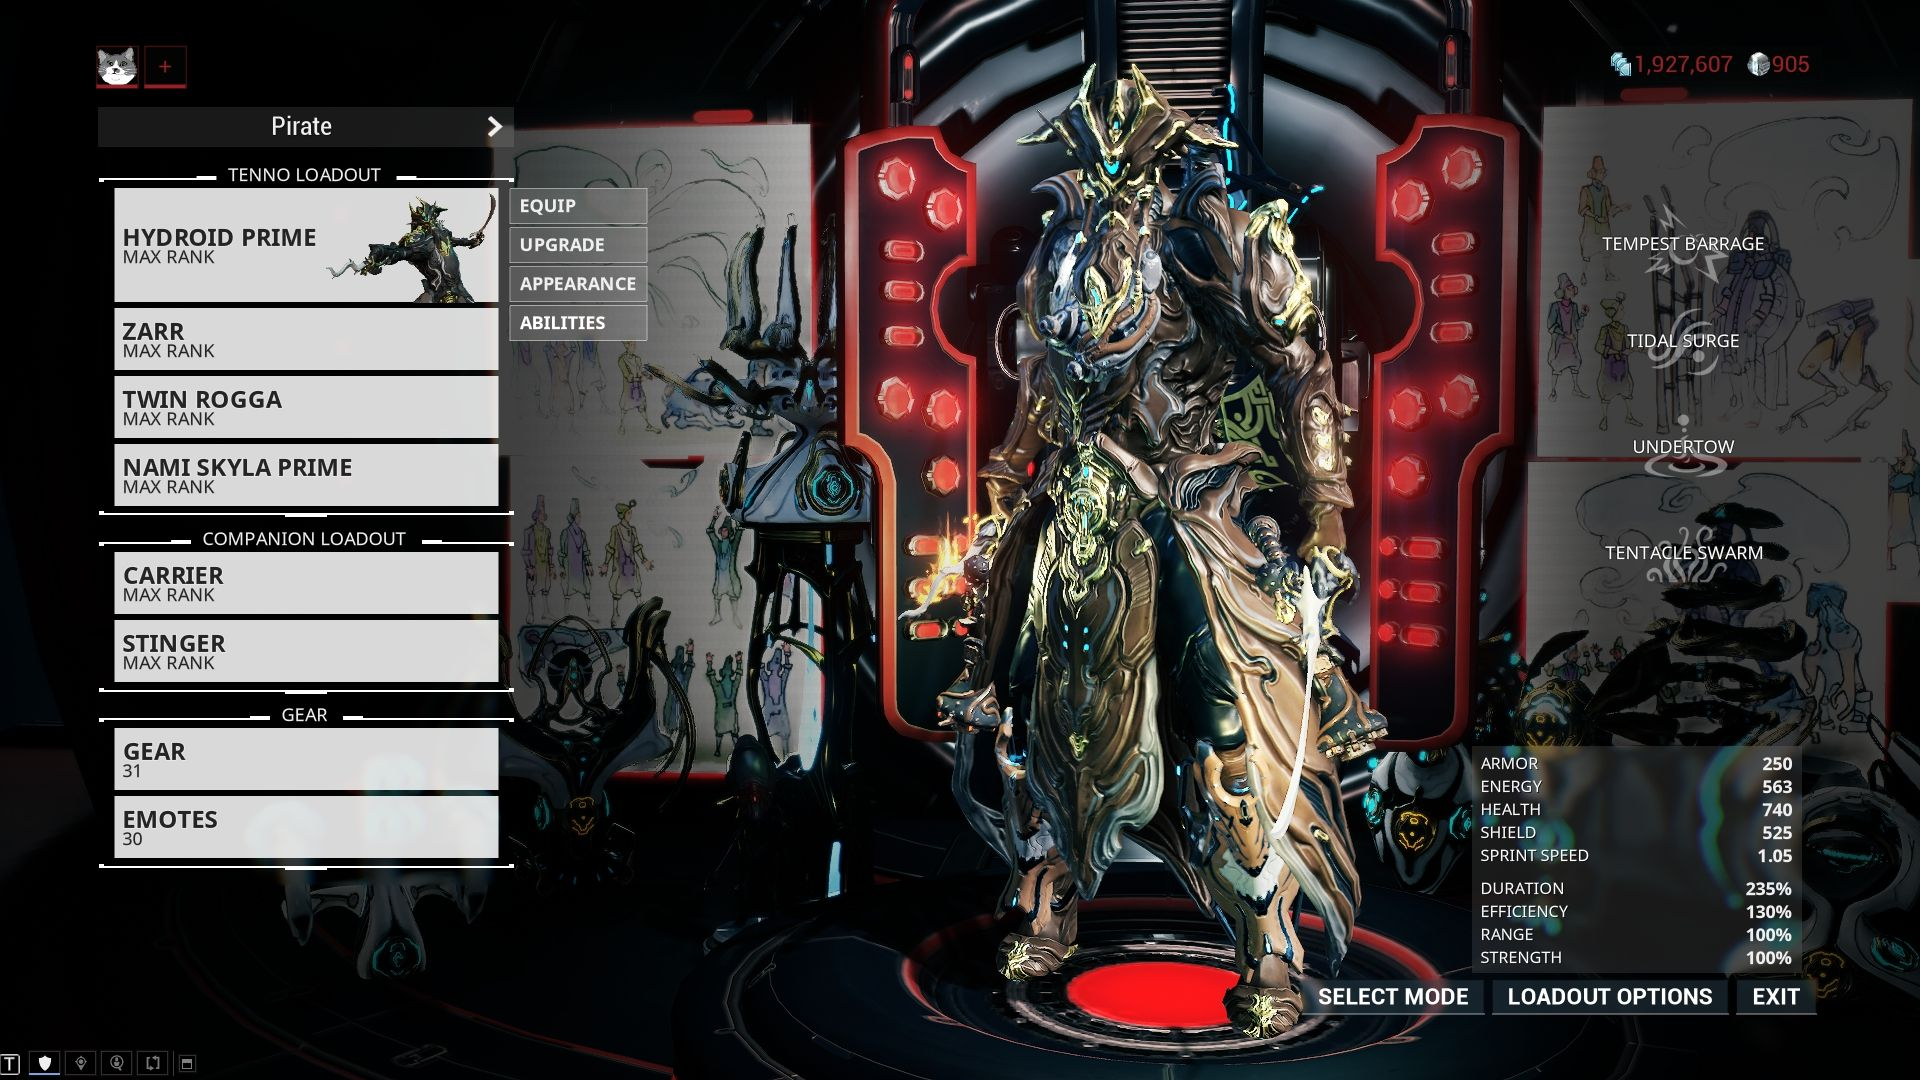 Pin On Warframe The parazon is a tool that you automatically obtain in warframe. pin on warframe